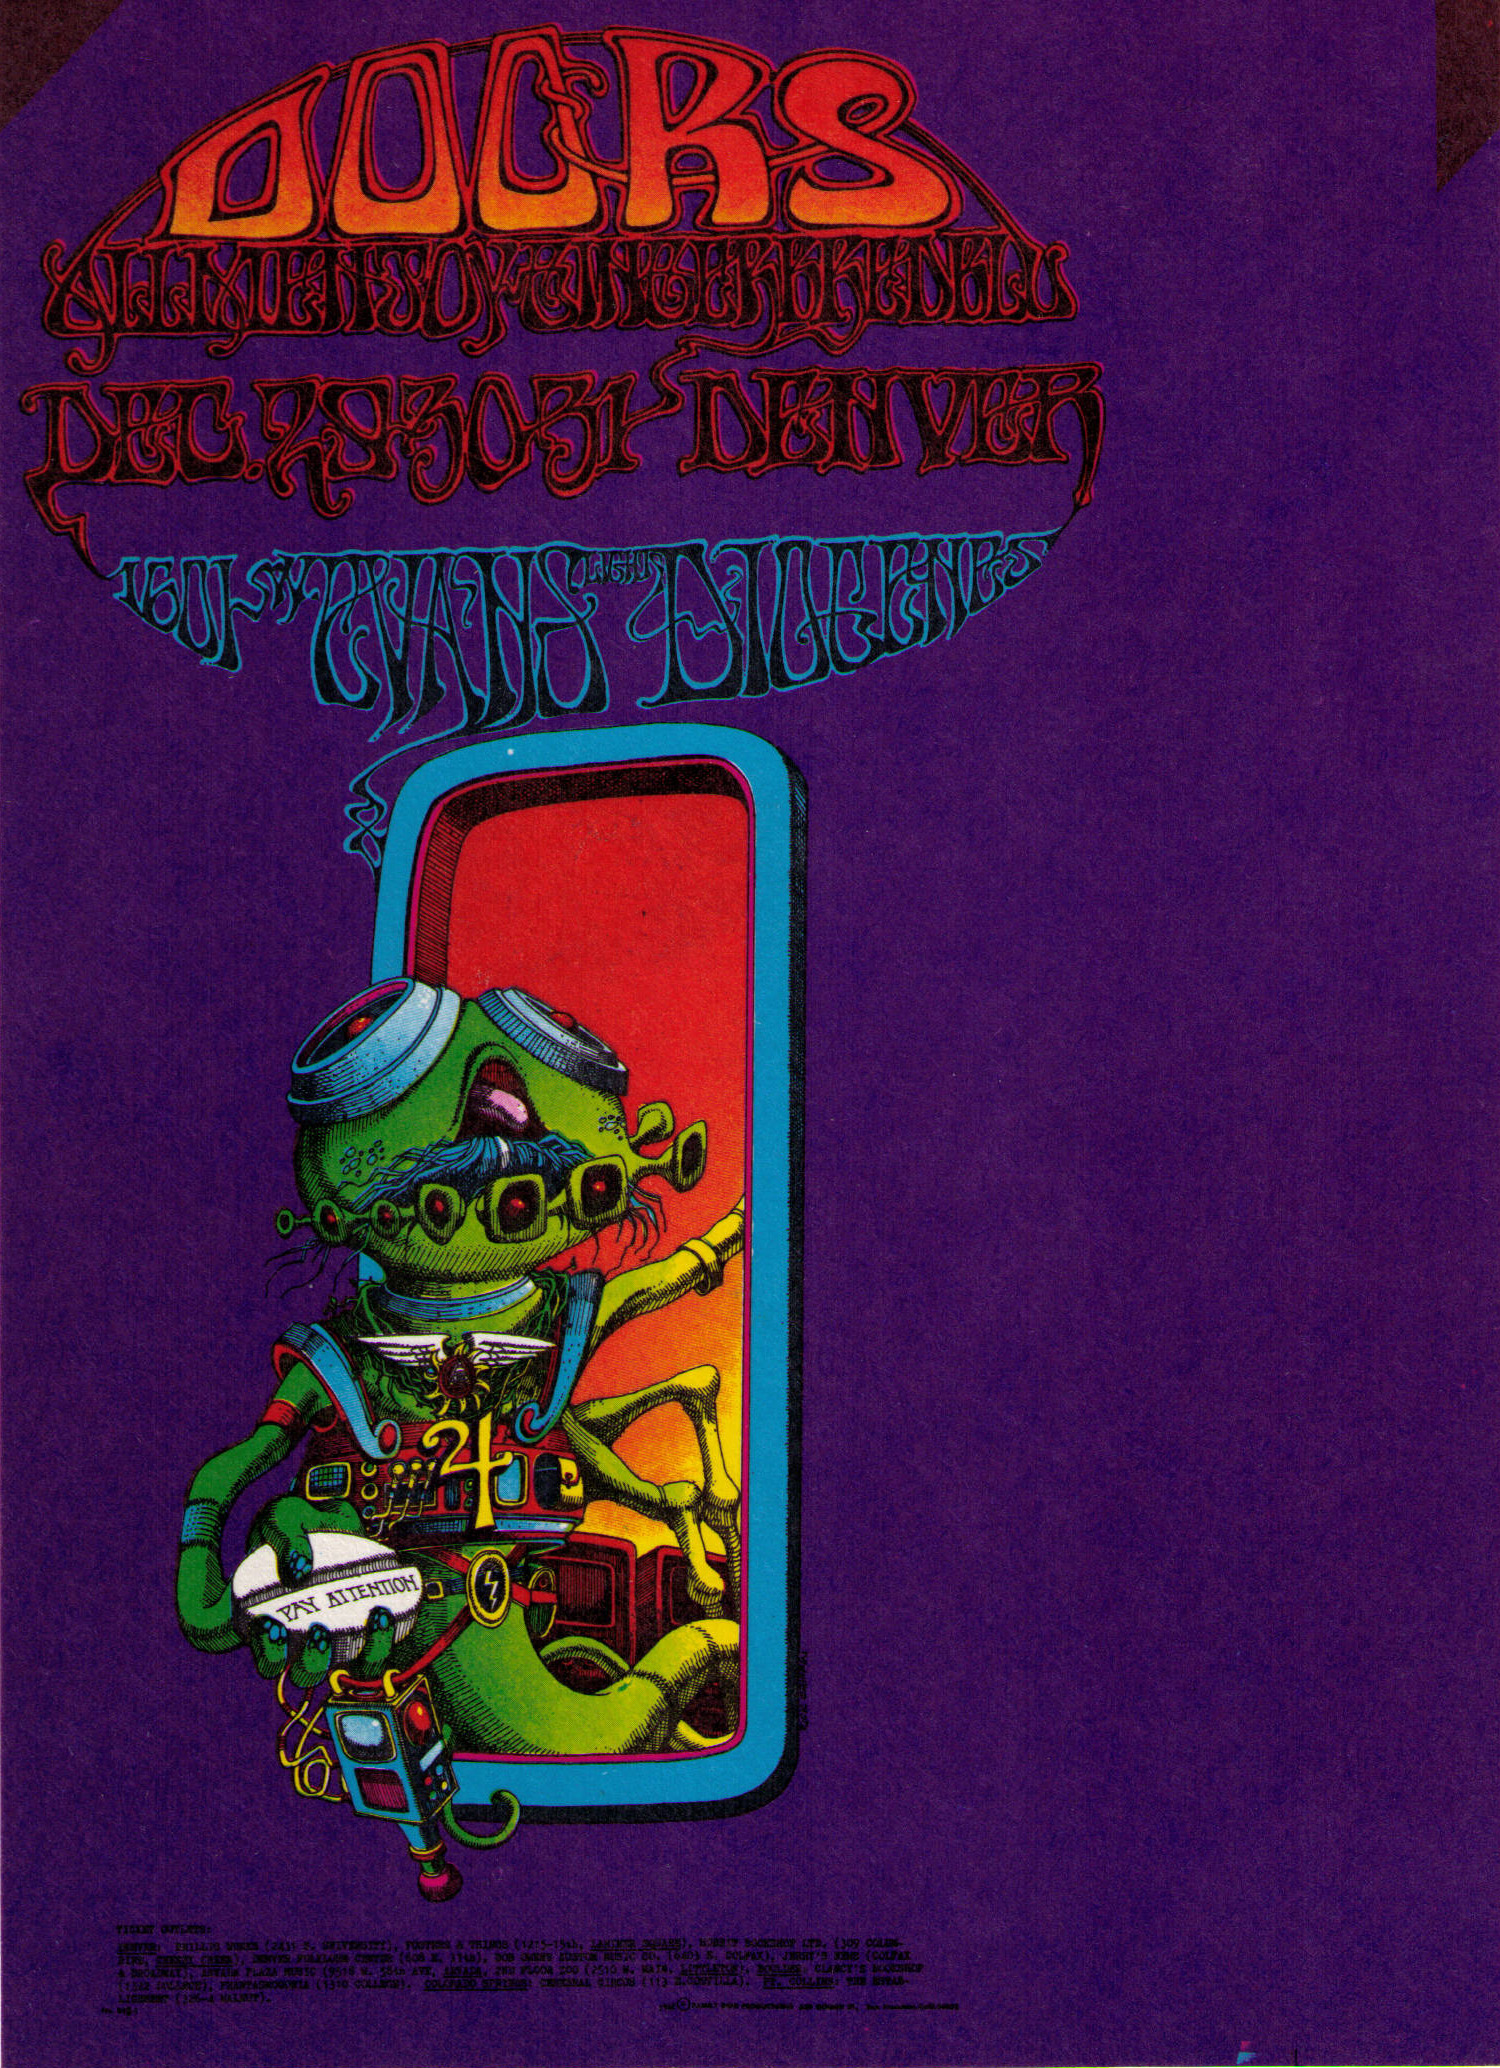 //.postergeist.com/posters/scans3/FDD18.jpg  sc 1 st  PosterGeist! & THE DOORS - Rare Concert Posters of the 60u0027s and 70u0027s - PosterGeist! pezcame.com